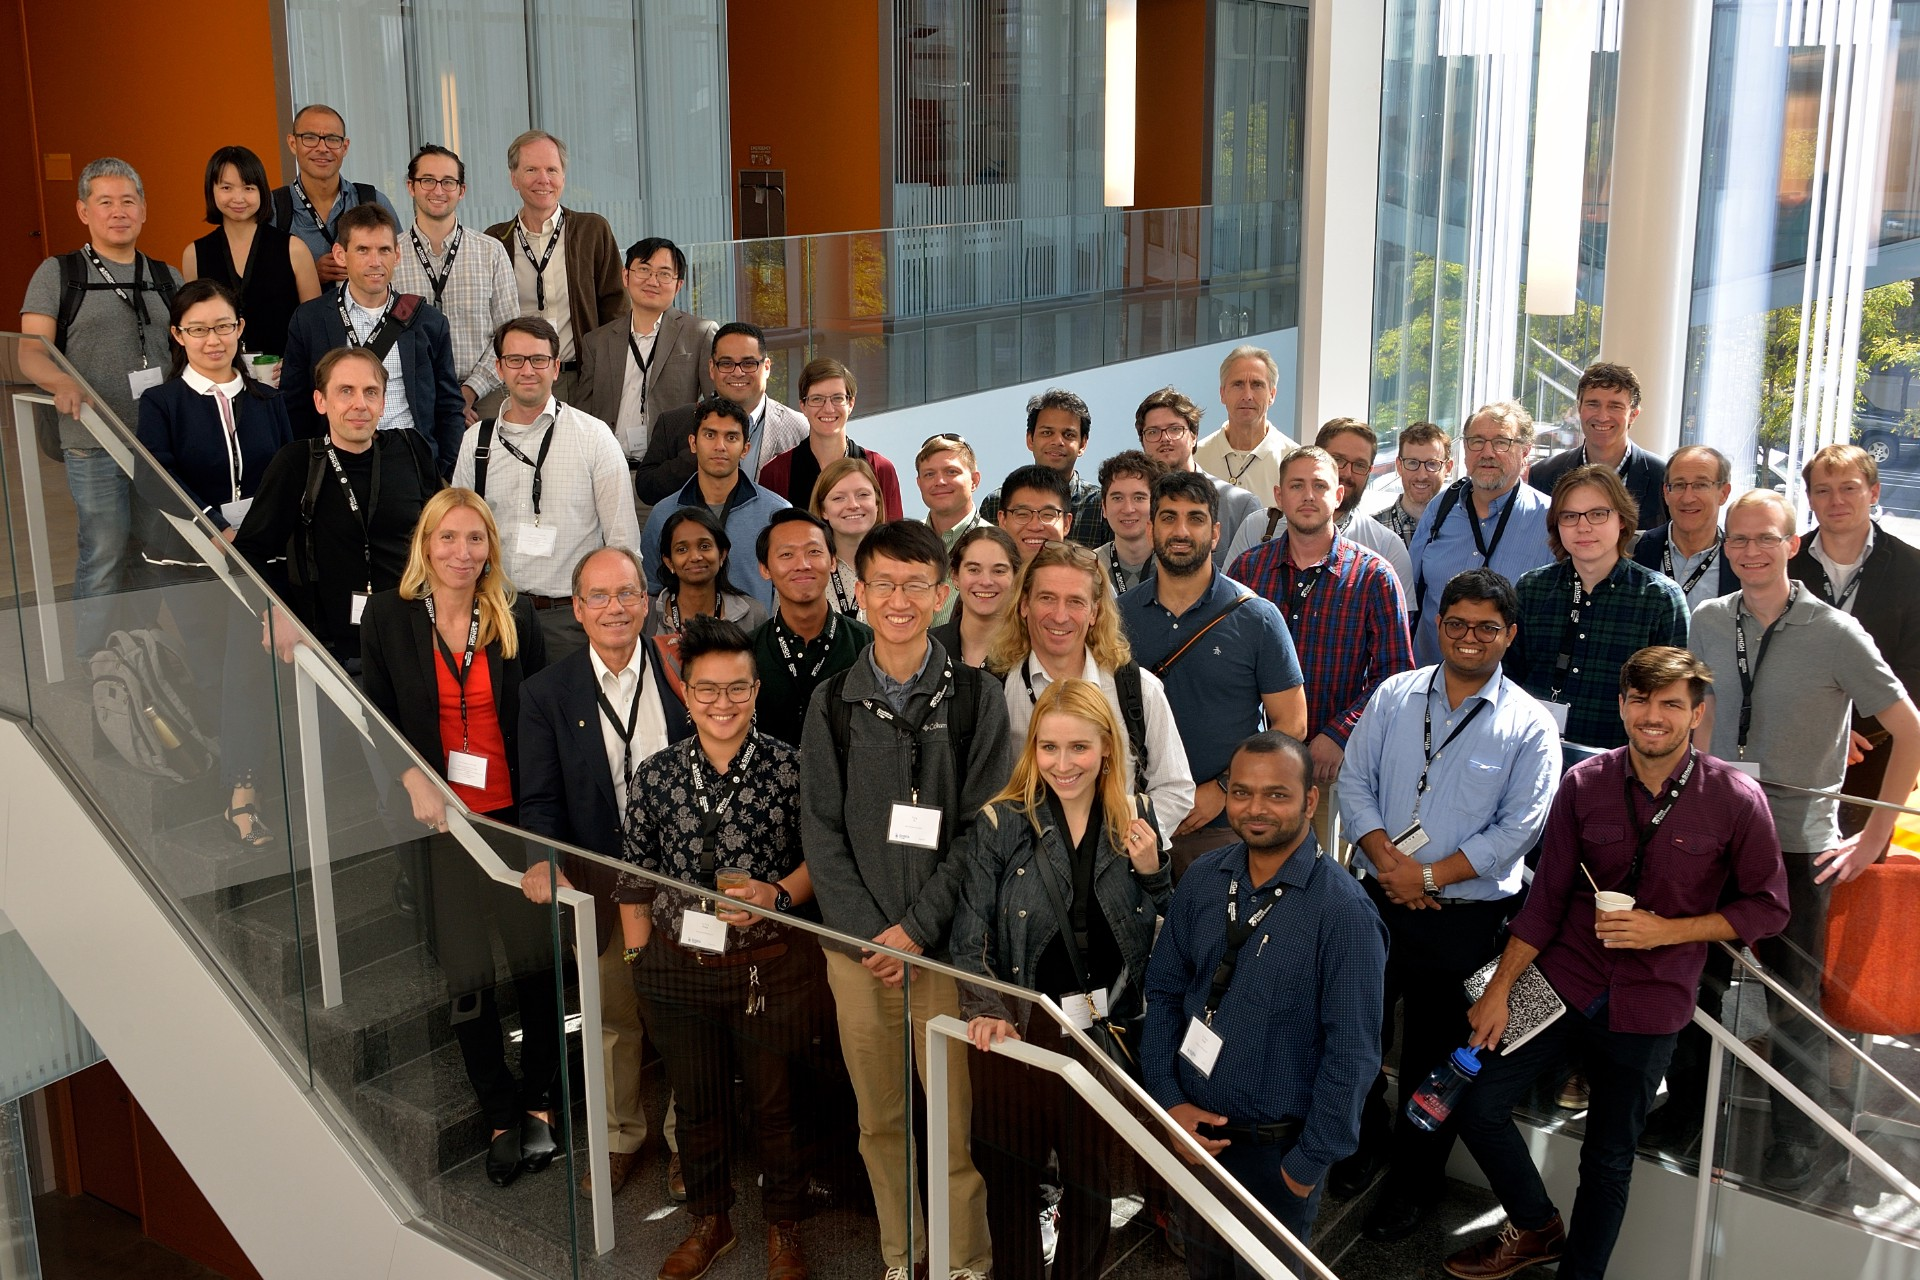 A large contingent of quantum scientists pose for a group photo on the stairs of the Singh Center for Nanotechnology